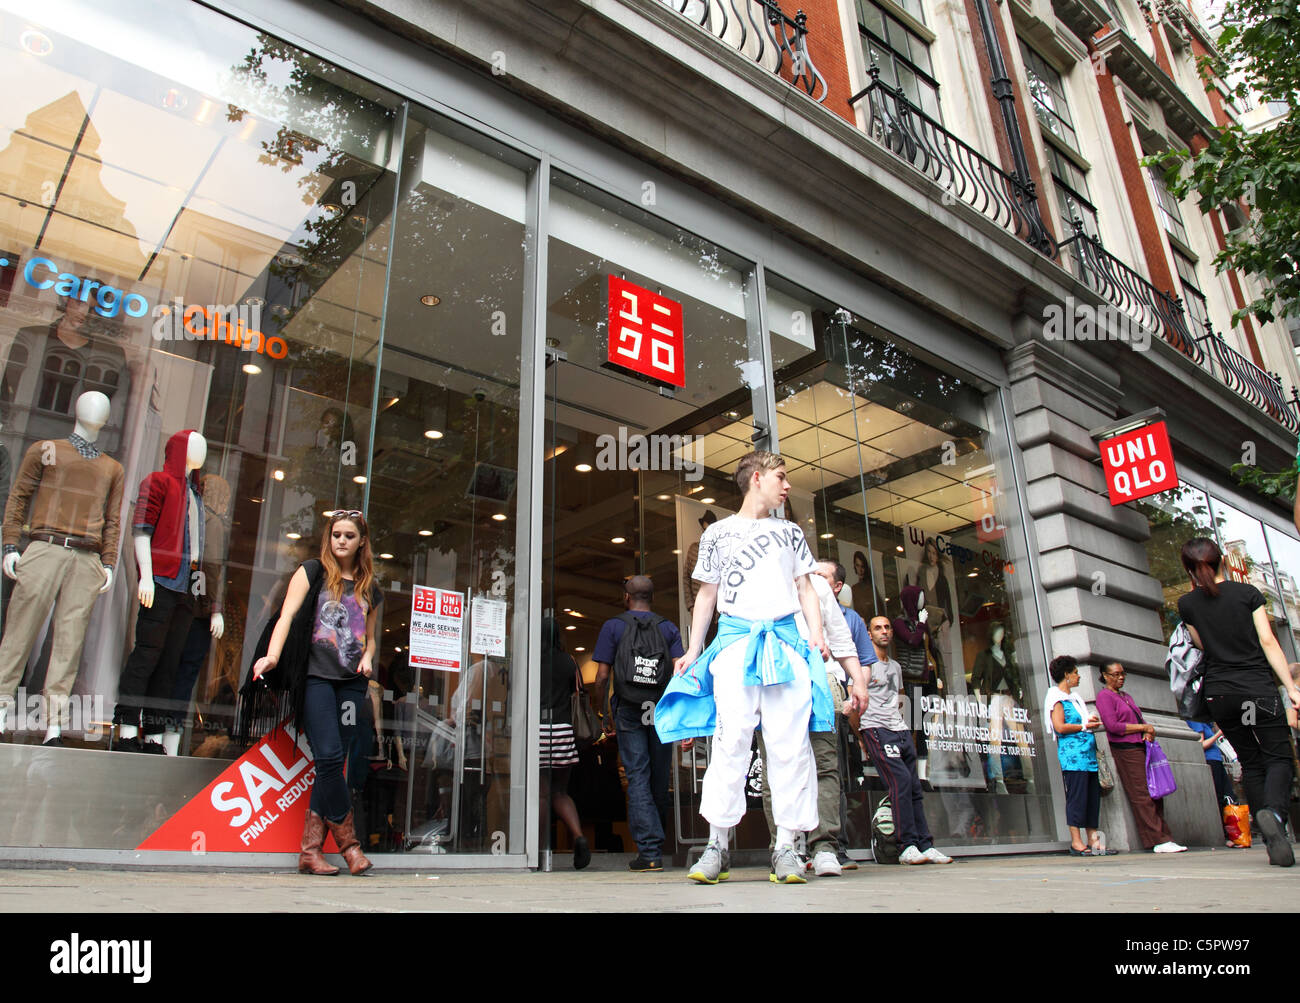 A Uni Qlo store on Oxford Street, London, England, U.K. - Stock Image